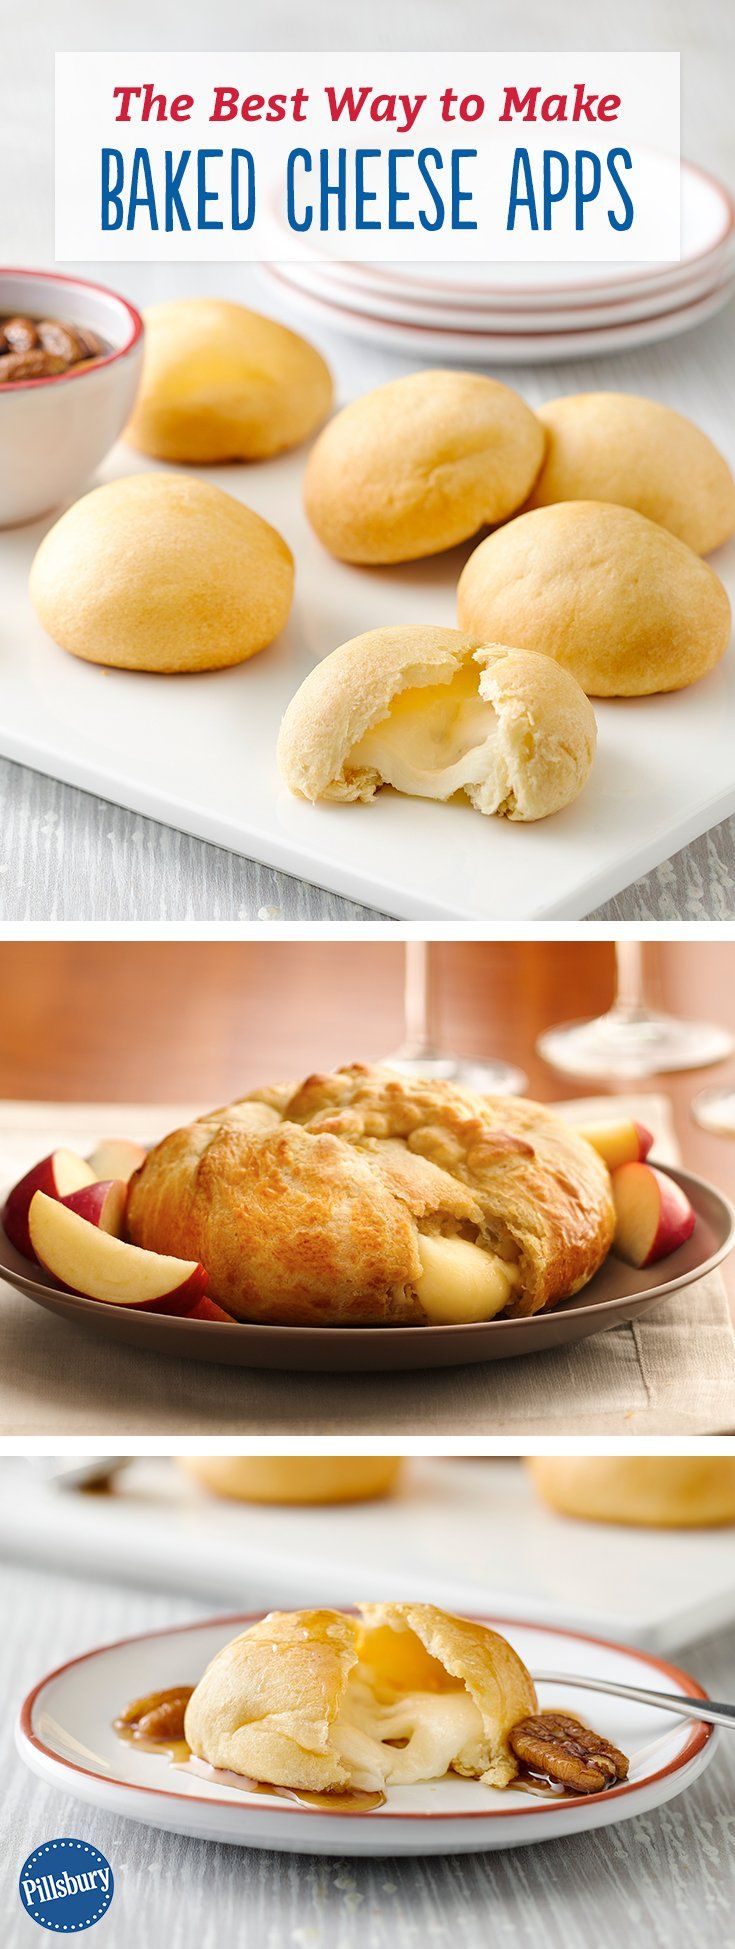 Everyone's favorite appetizer: gooey, melty Baked Cheese! Sweet dreams are made of cheese: Put your own (surprisingly easy!) spin on tradition with new ways to serve party classic baked Brie. Great for the Christmas holiday when you have family and friends over.